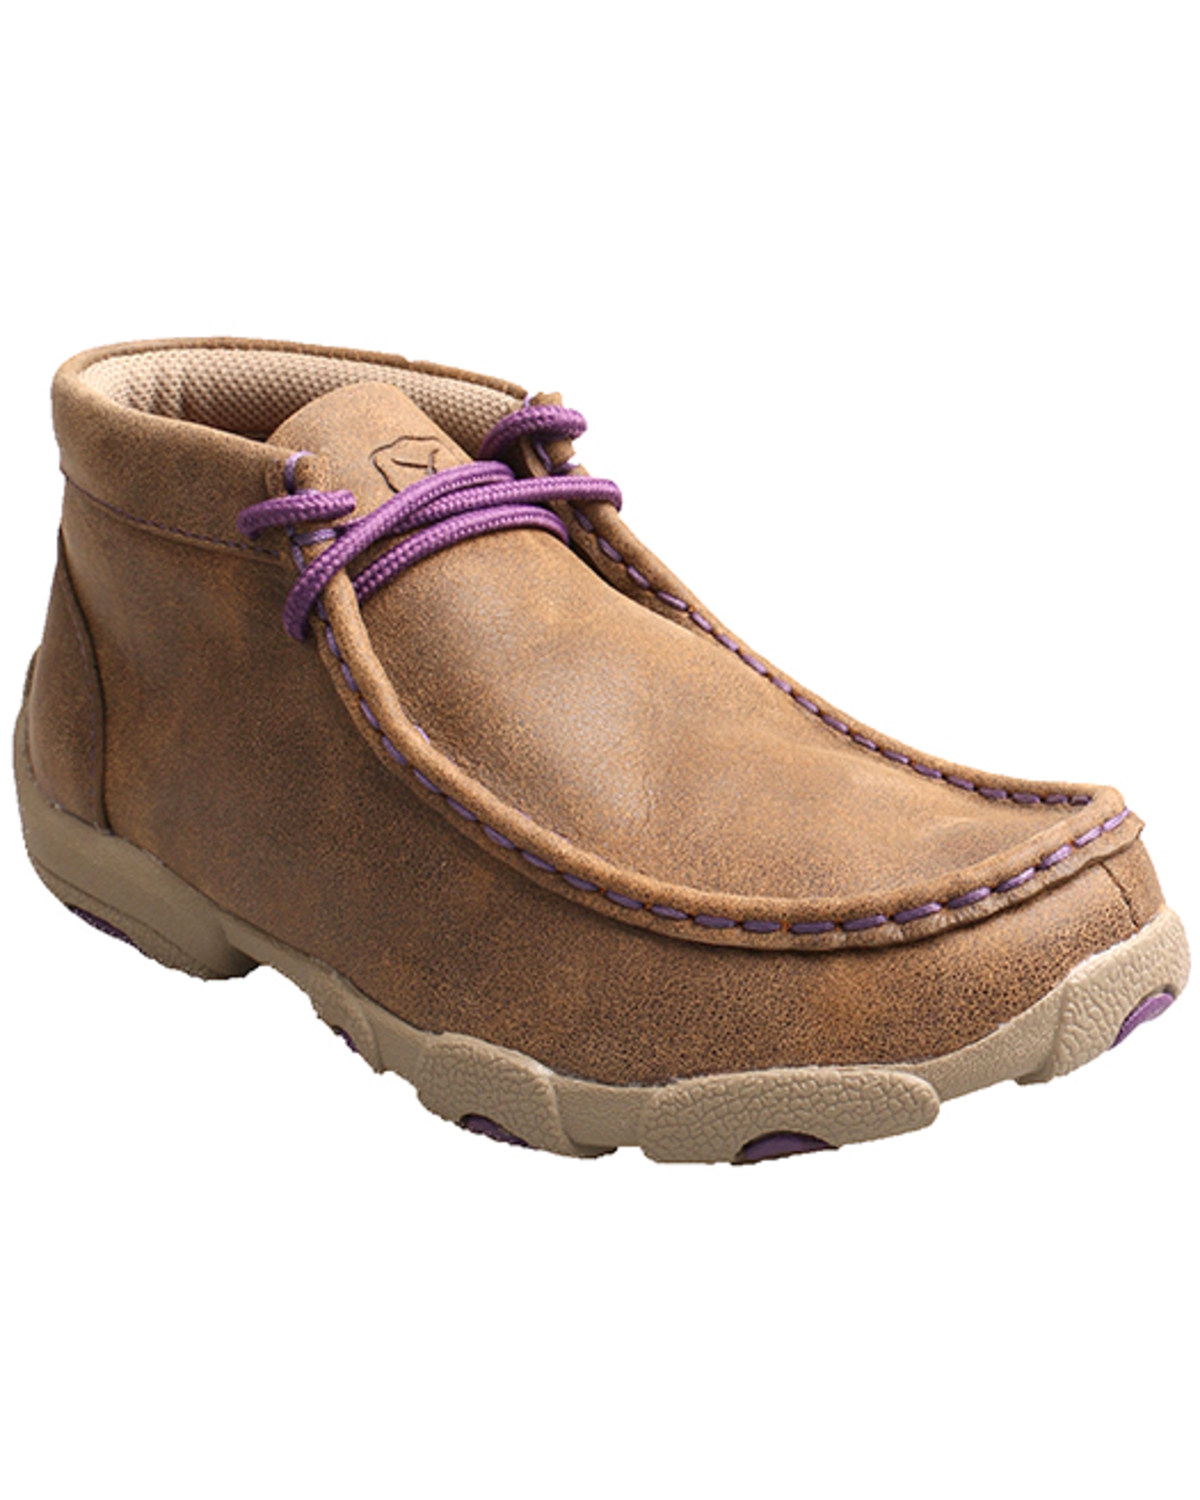 2197fc15053 Twisted X Kid's Brown and Purple Driving Mocs